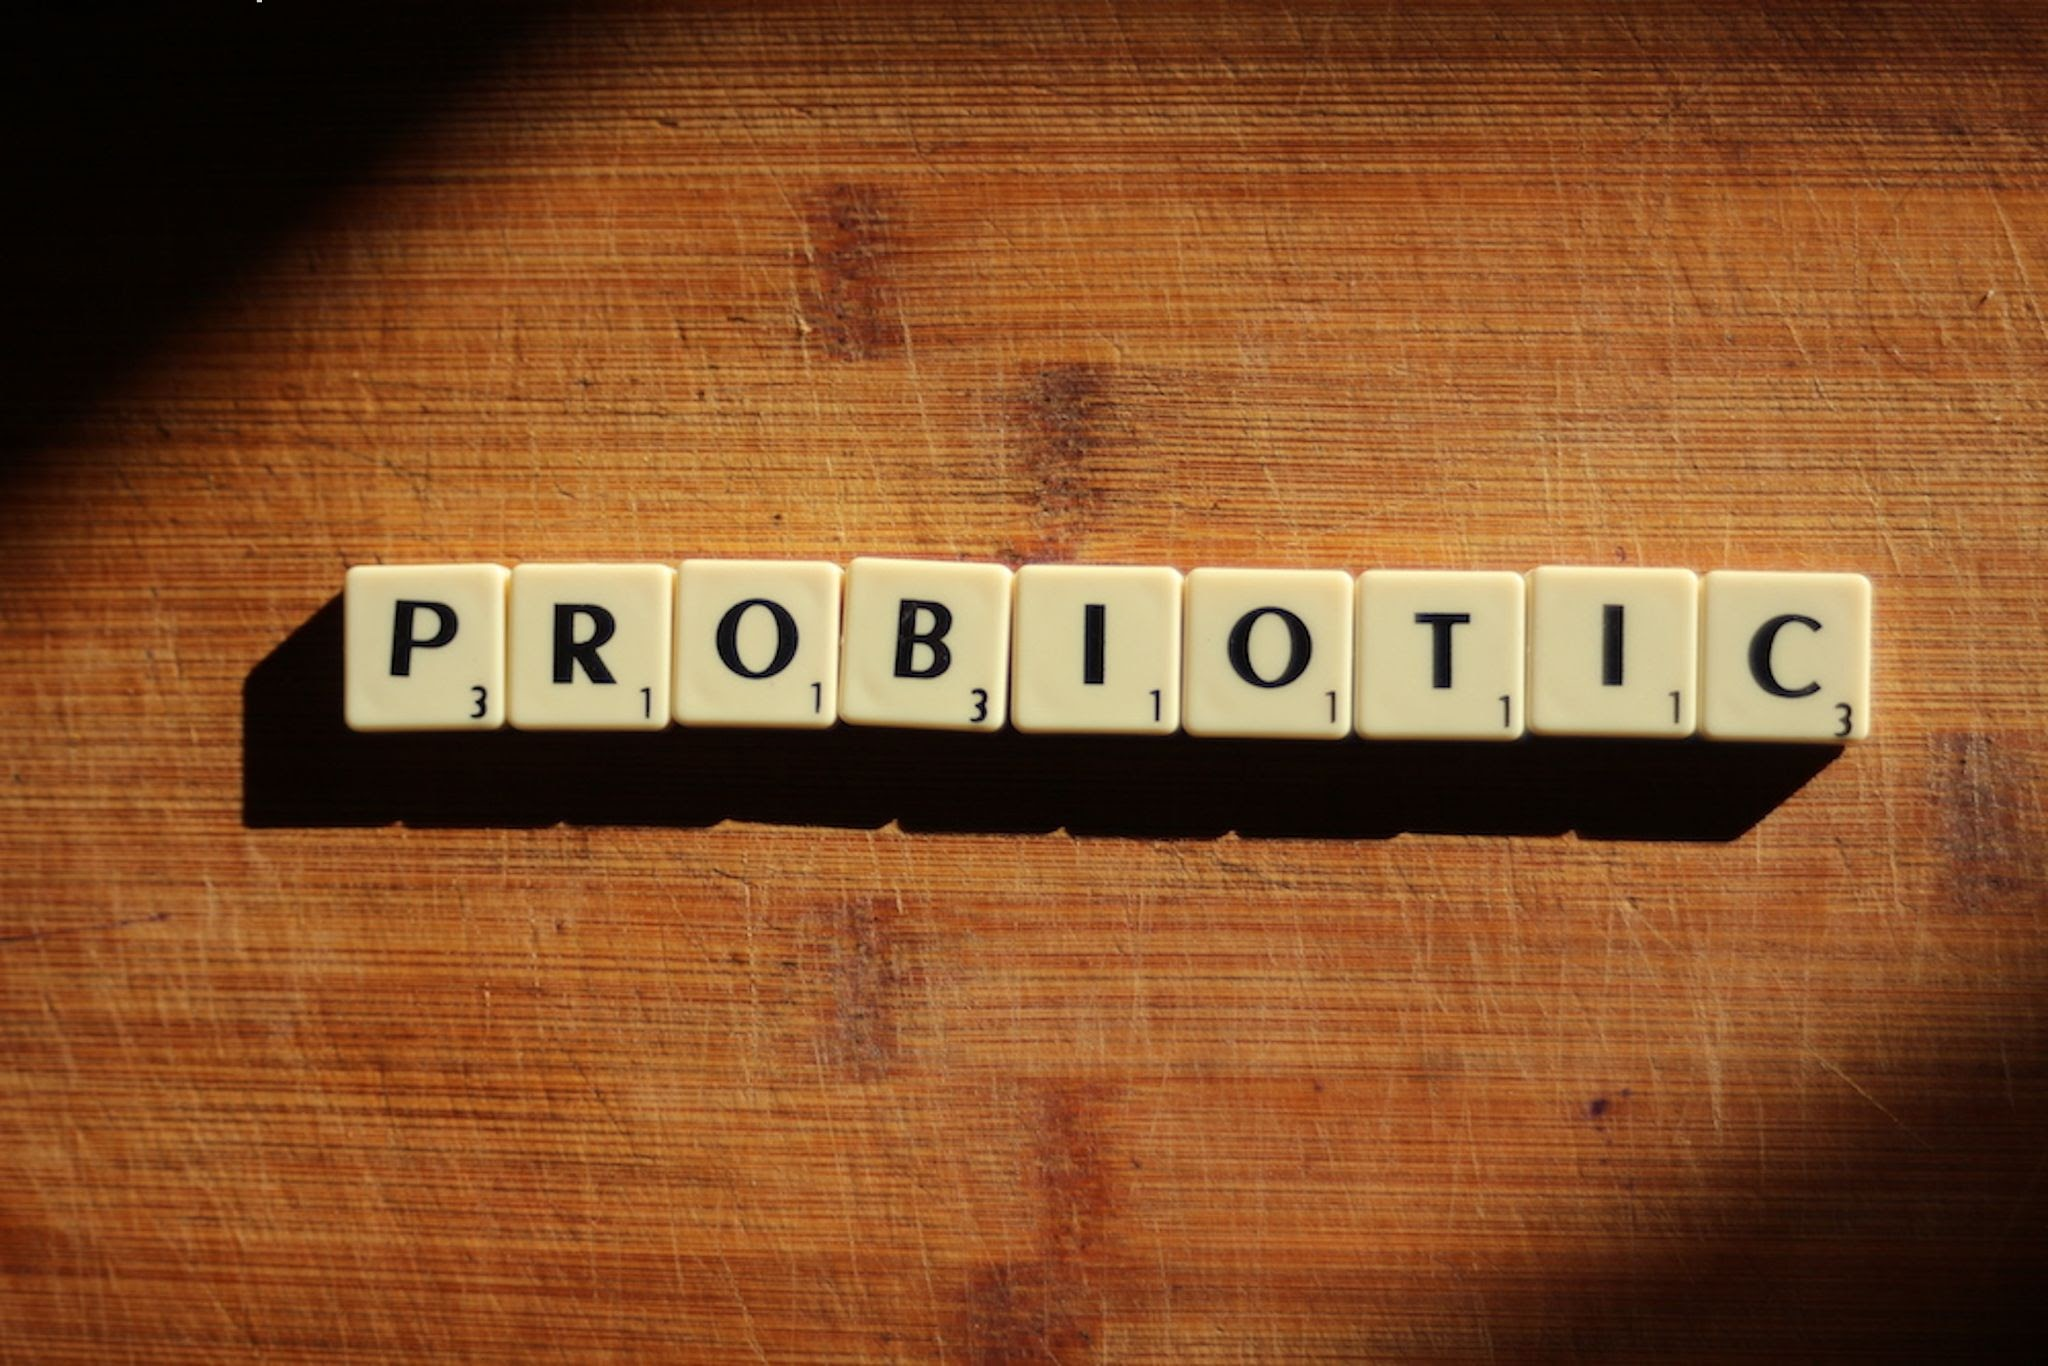 probiotic benefits smelled out in letters